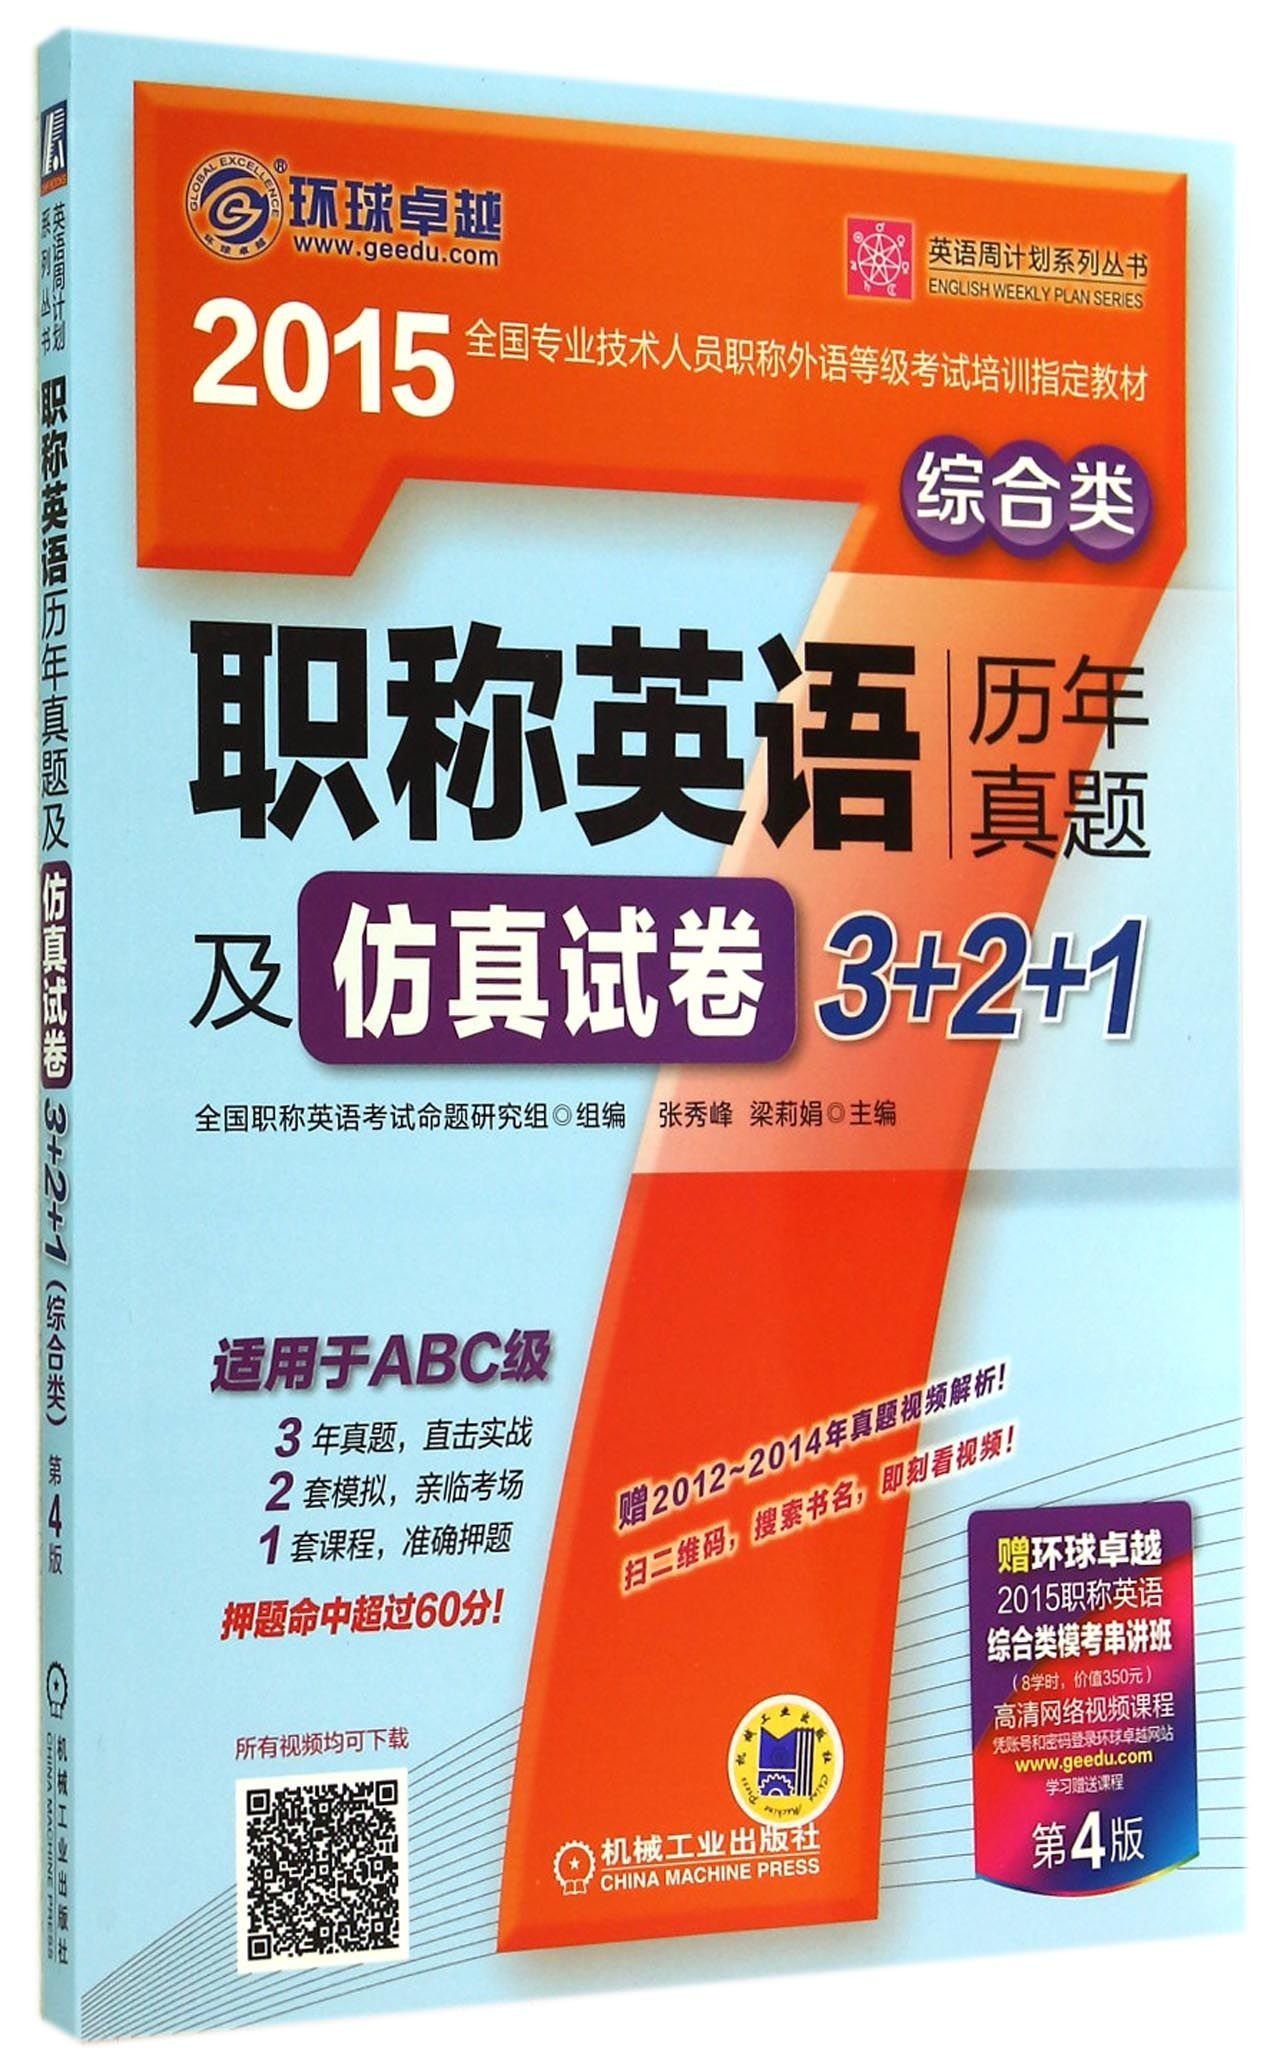 Download 2015 titles in English Studies Management and Simulation Paper 3 + 2 + 1 integrated class (for ABC grade) (4th Edition)(Chinese Edition) pdf